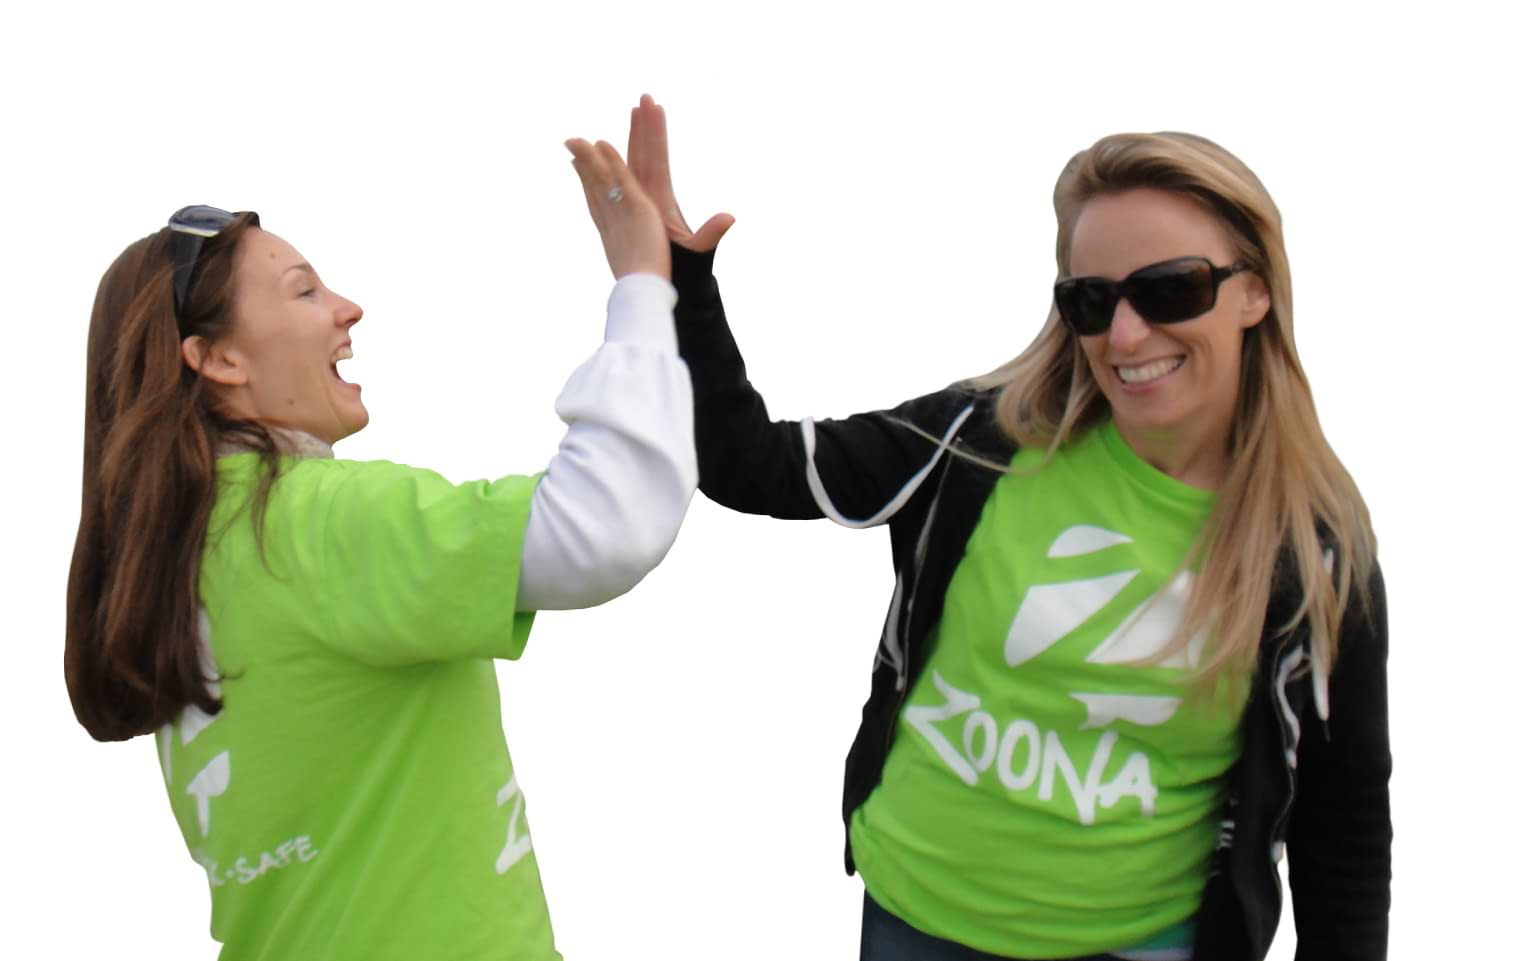 A High-Five Between Two Zoona Team Members